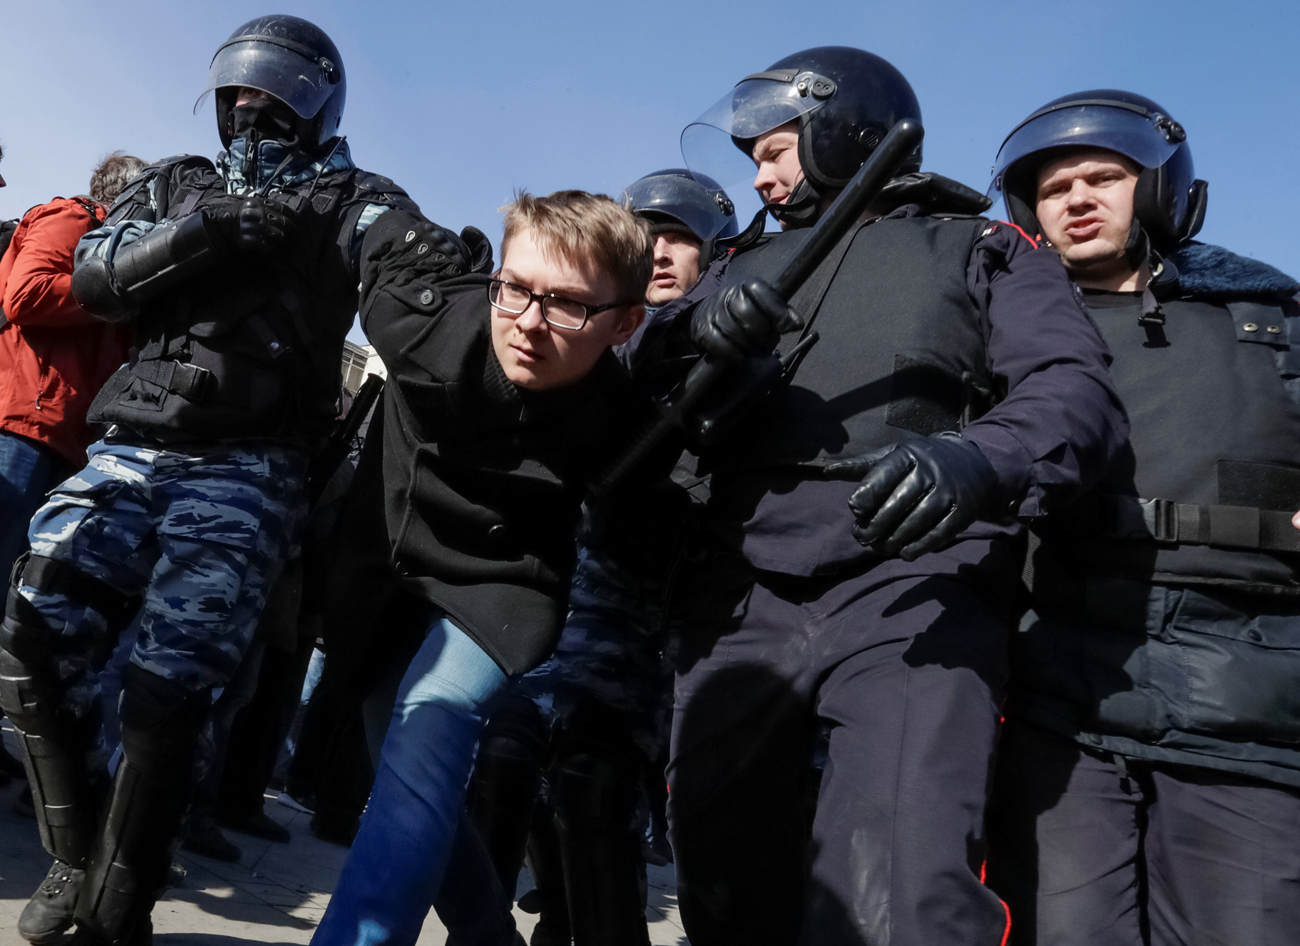 Law enforcement officers detain an opposition supporter during a rally in Moscow, March 26, 2017.